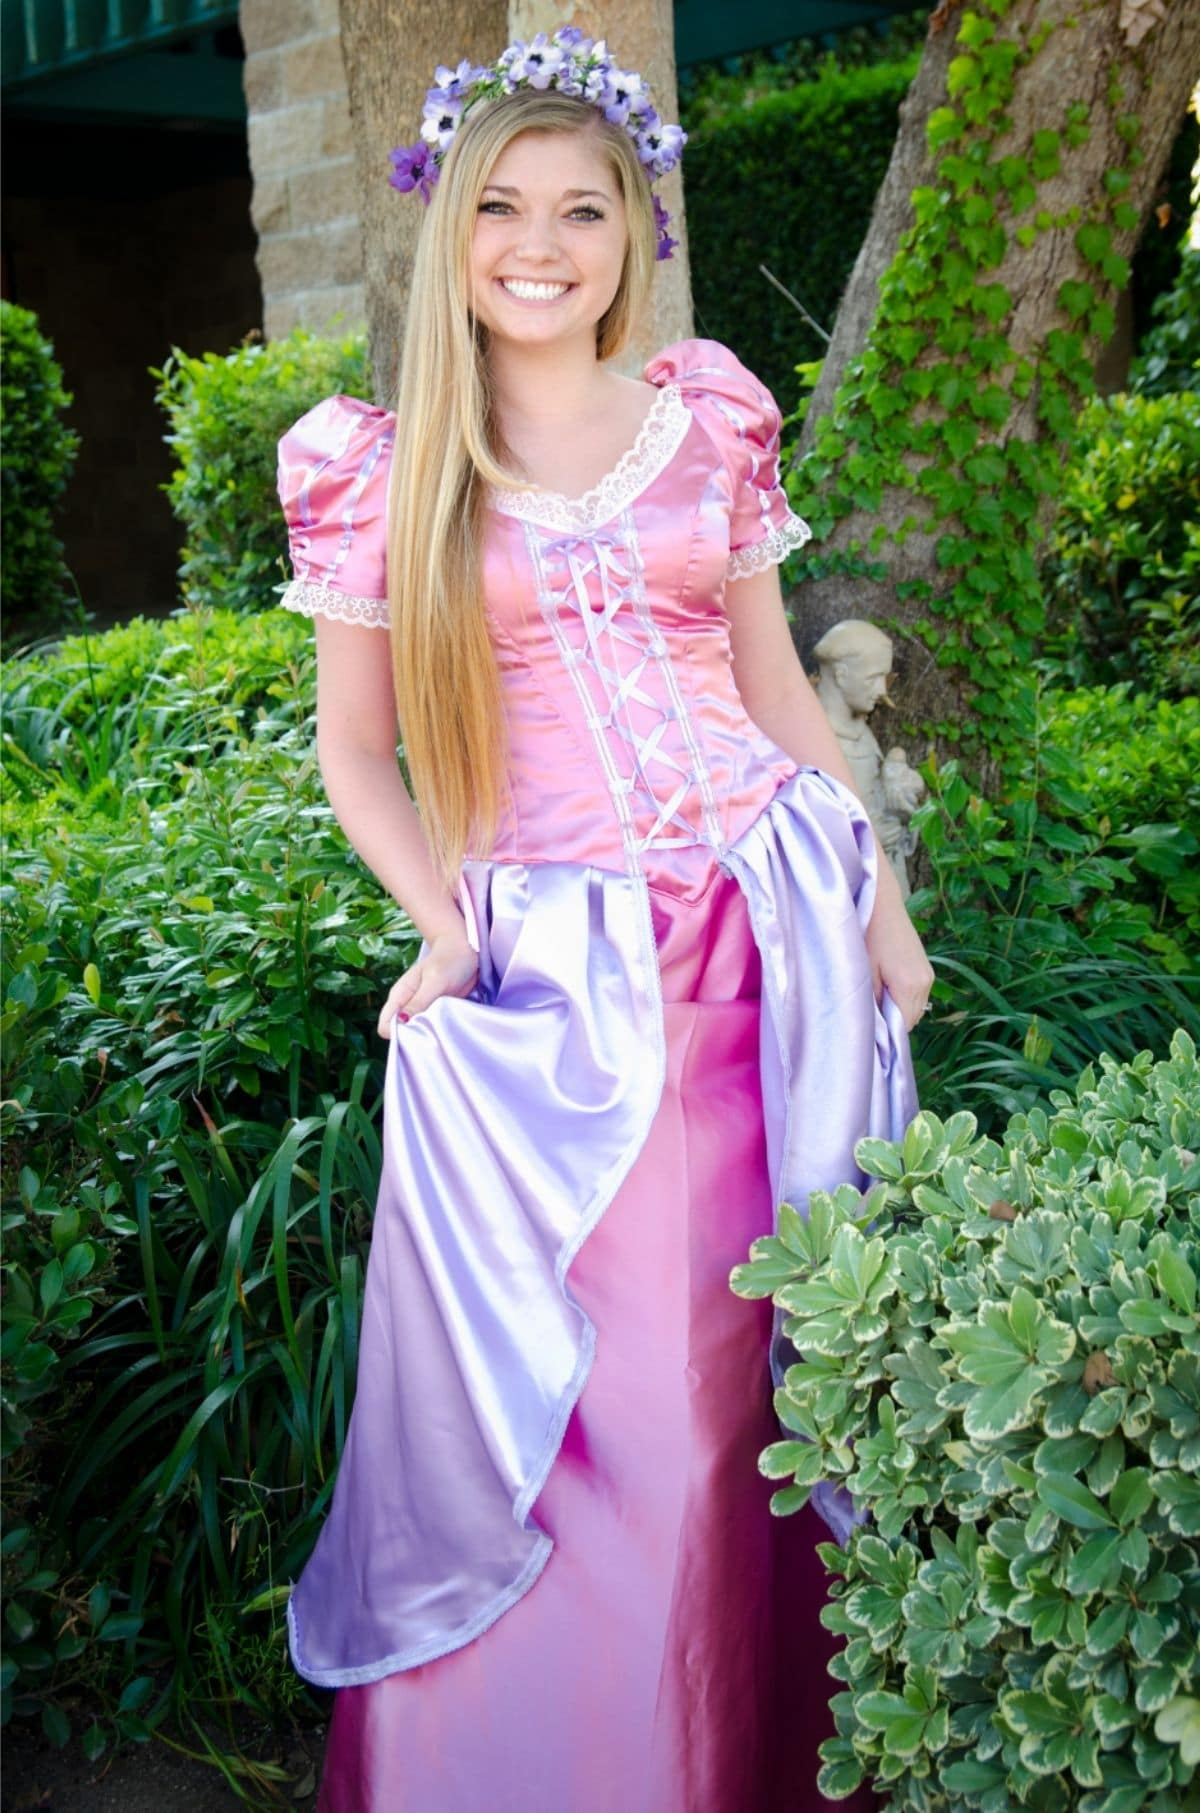 modest Rapunzel costume